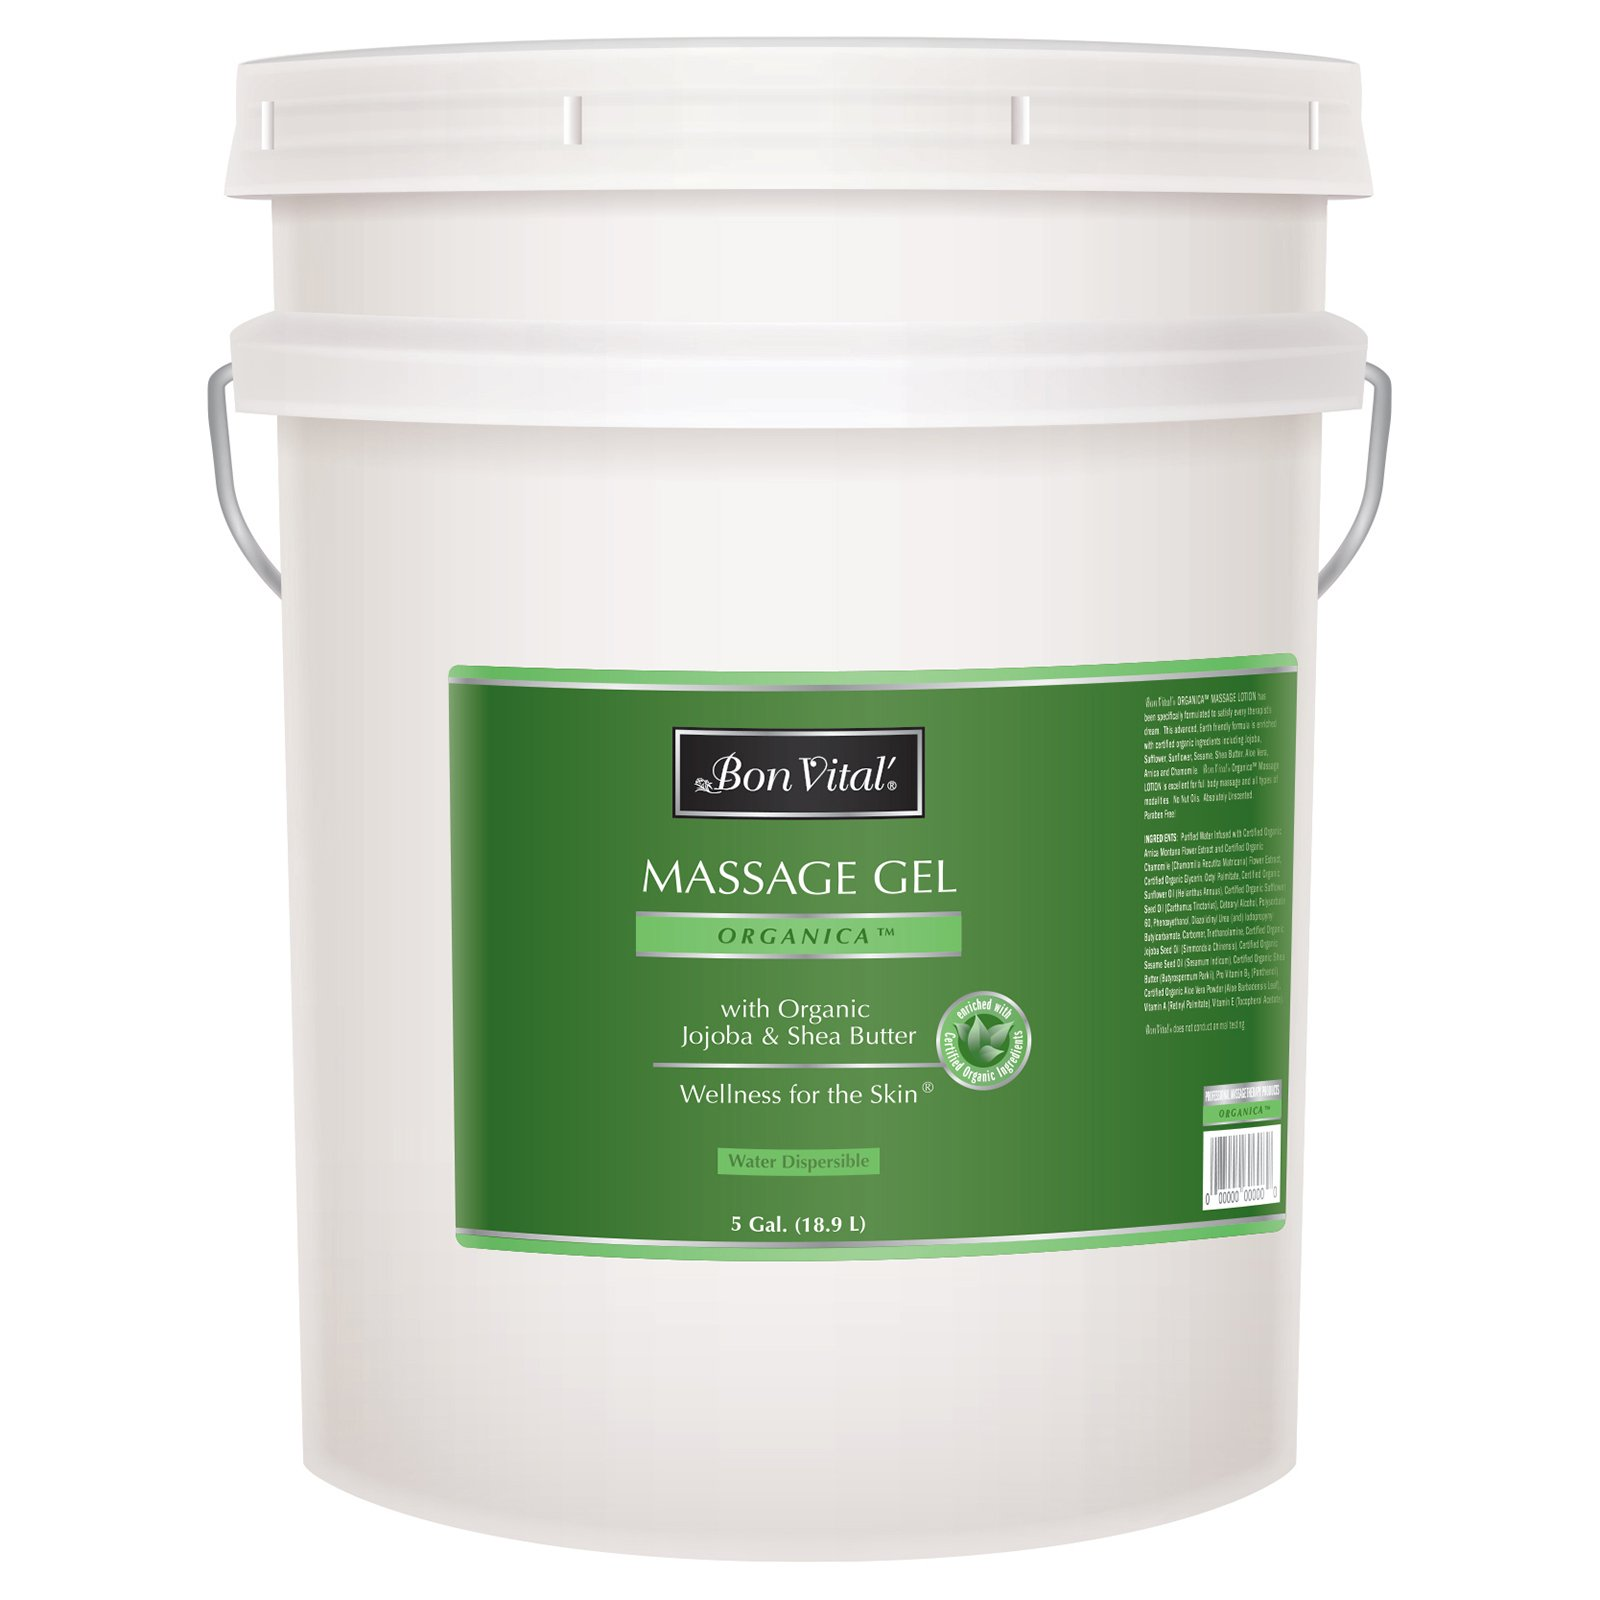 Bon Vital' Organica Massage Gel Made with Certified Organic Ingredients for Earth-Friendly and Relaxing Massage, Moisturizer for Natural Massage that Hydrates and Softens Skin, 5 Gallon Pail